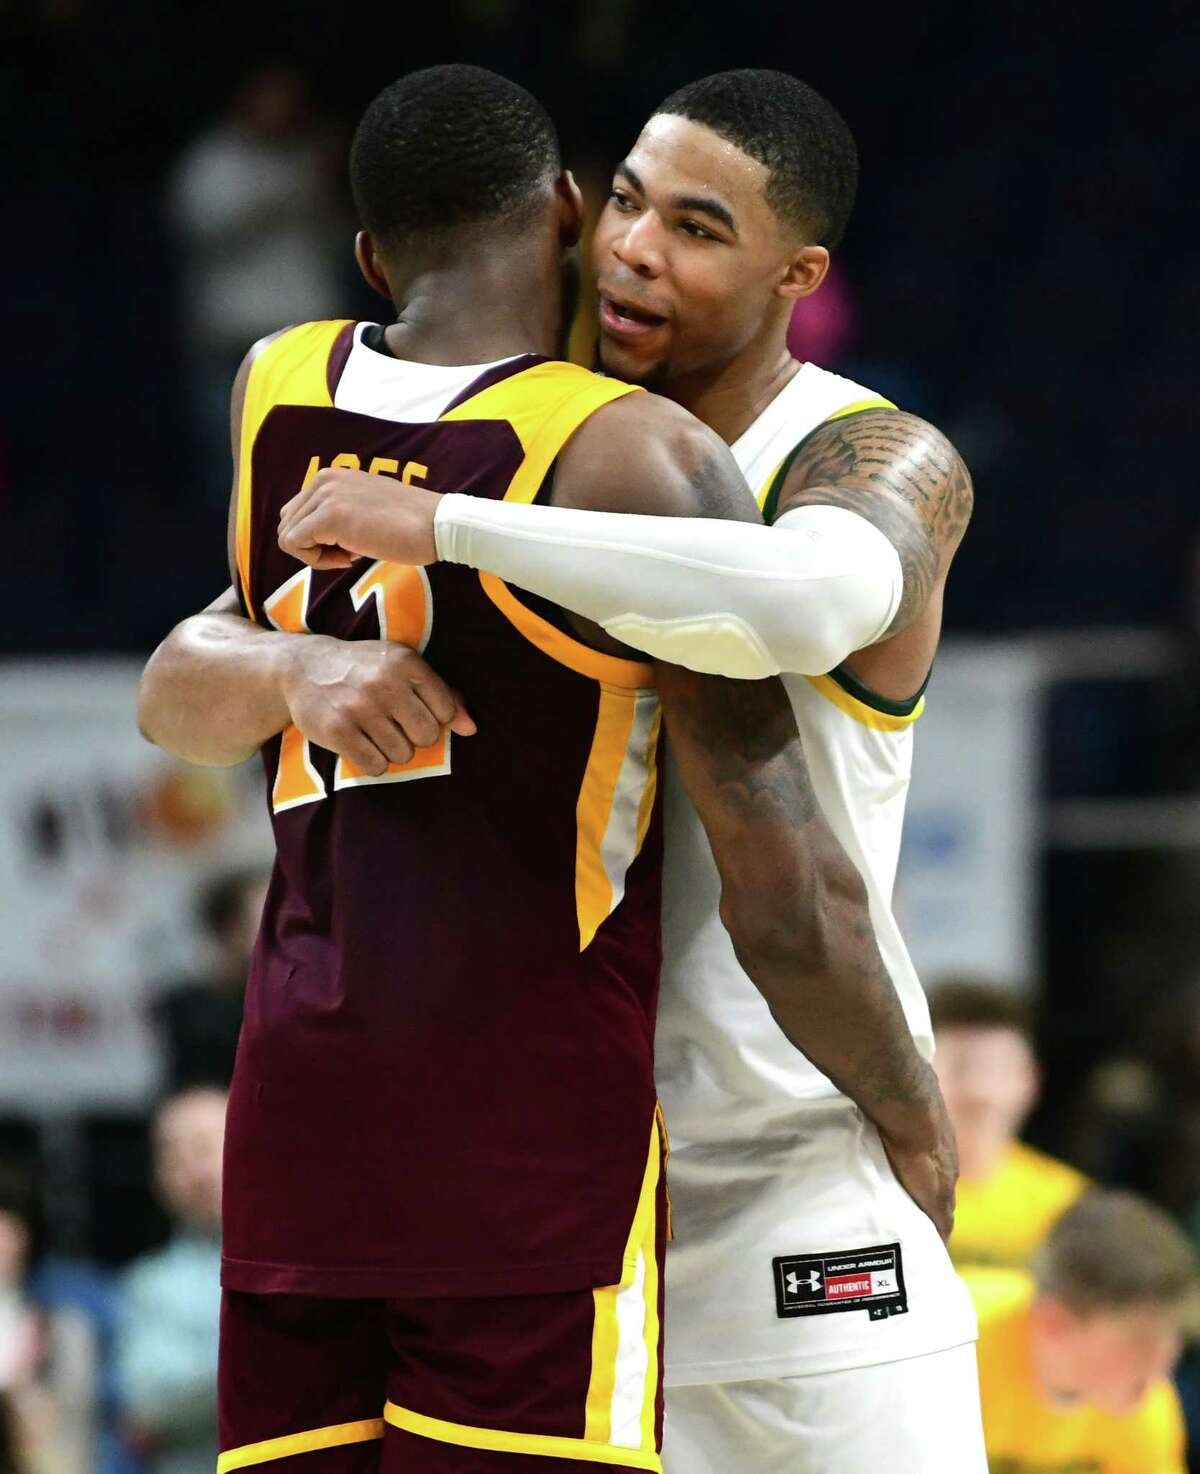 Siena's Elijah Burns, right, hugs Iona's Tajuan Agee after Siena's win at the Times Union Center on Wednesday, Feb. 19, 2020 in Albany, N.Y. (Lori Van Buren/Times Union)